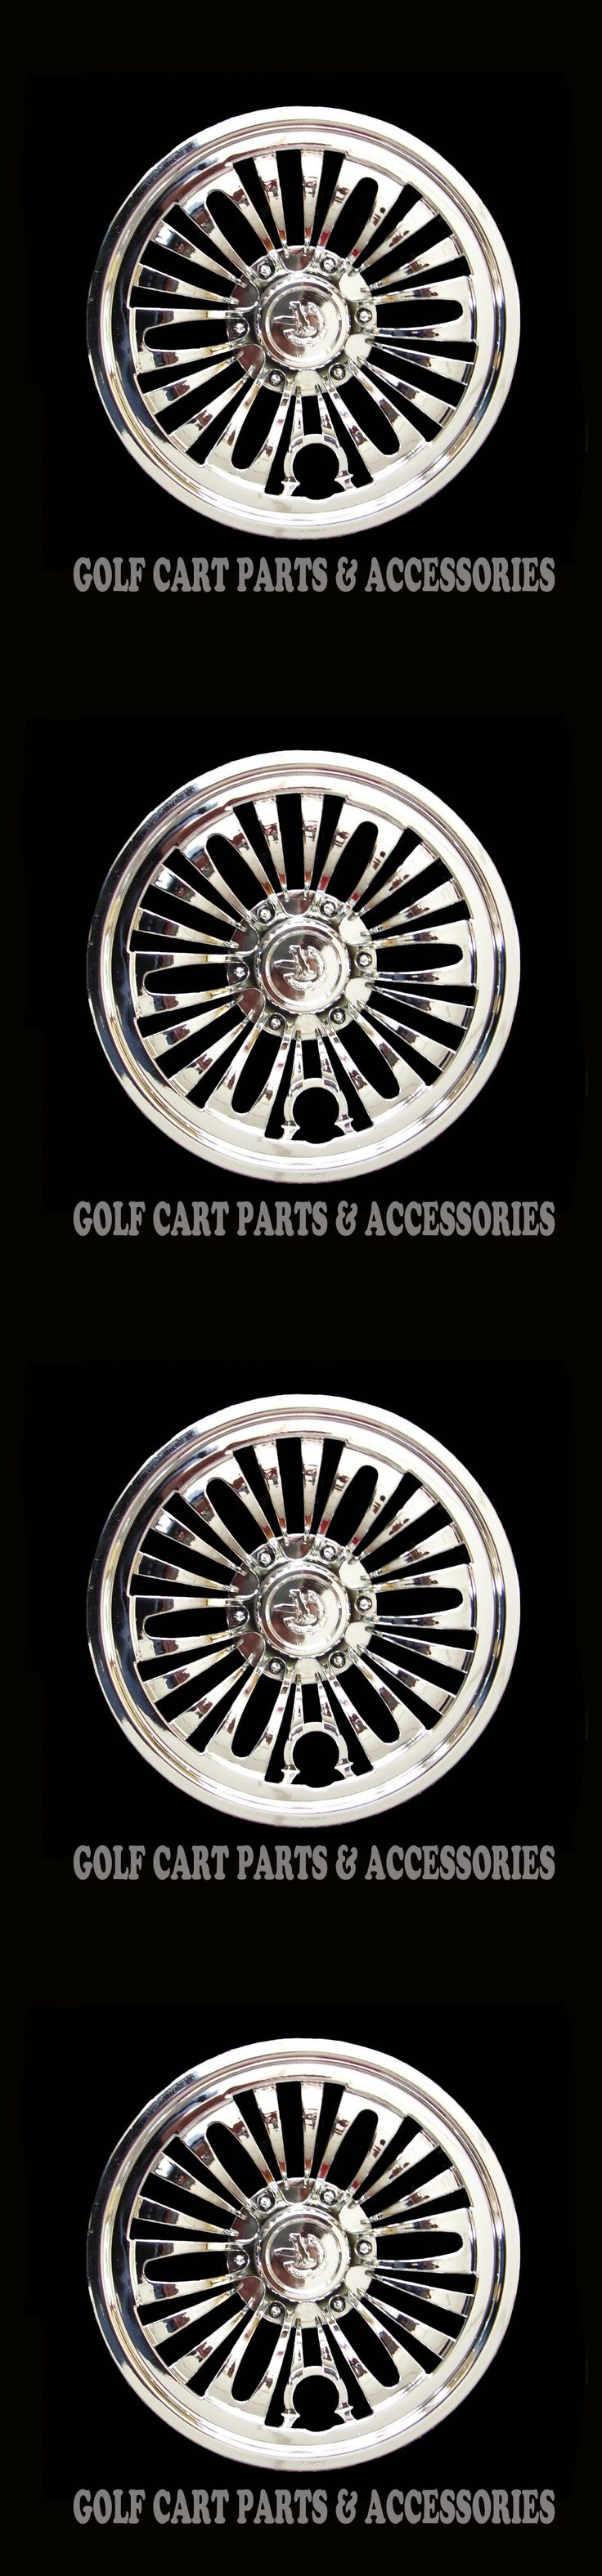 Other Golf Accessories 1514: (4) Chrome 8 Golf Cart Hub Caps - Ezgo, Club Car, Yamaha Set Of 4 Wheel Covers -> BUY IT NOW ONLY: $37 on eBay!